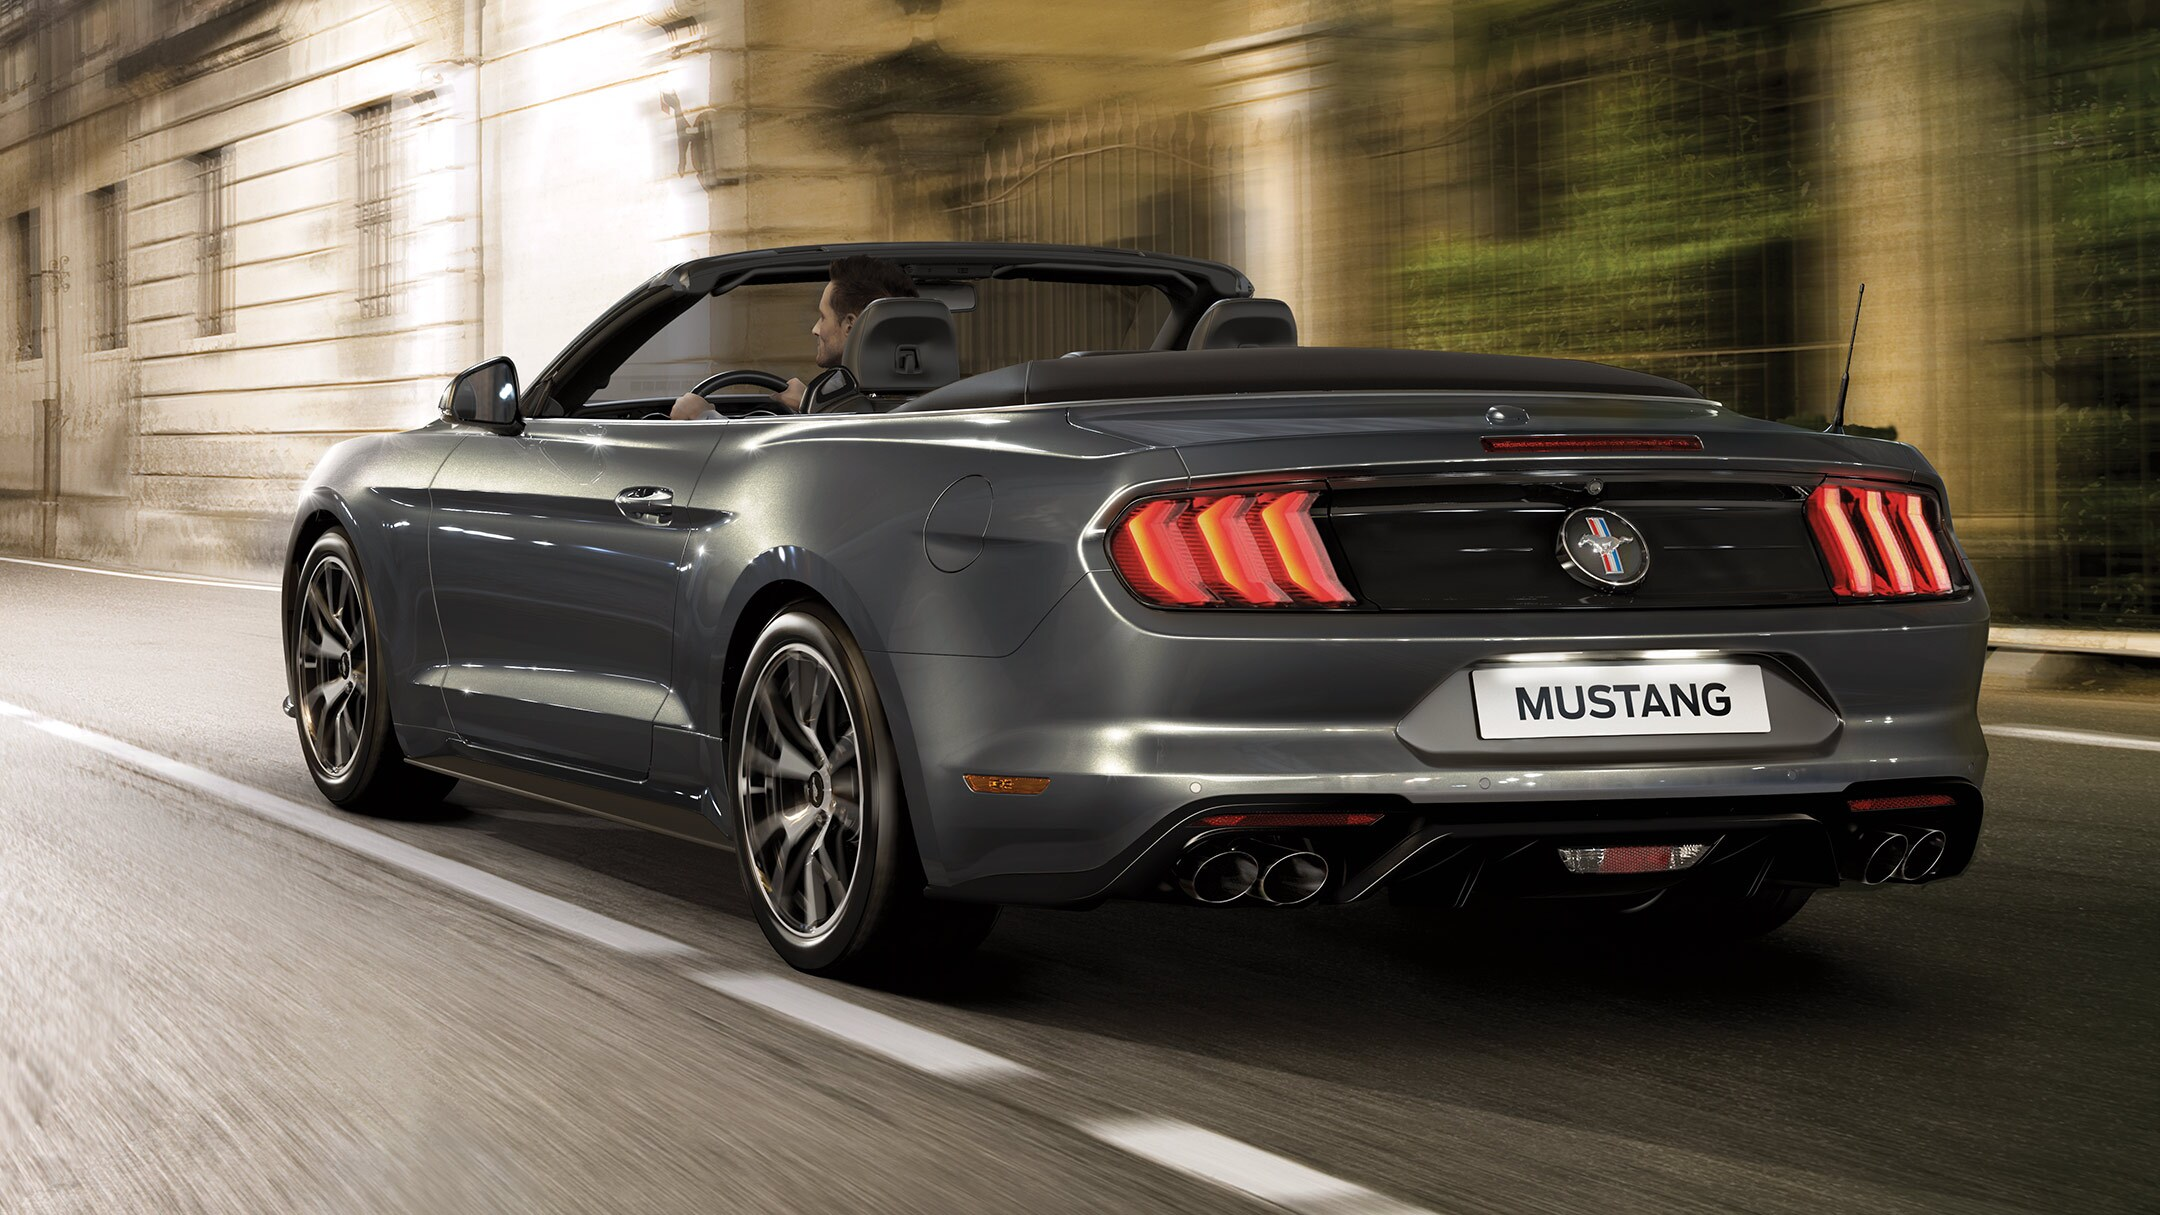 New Ford Mustang Convertible EcoBoost driving under tunnel